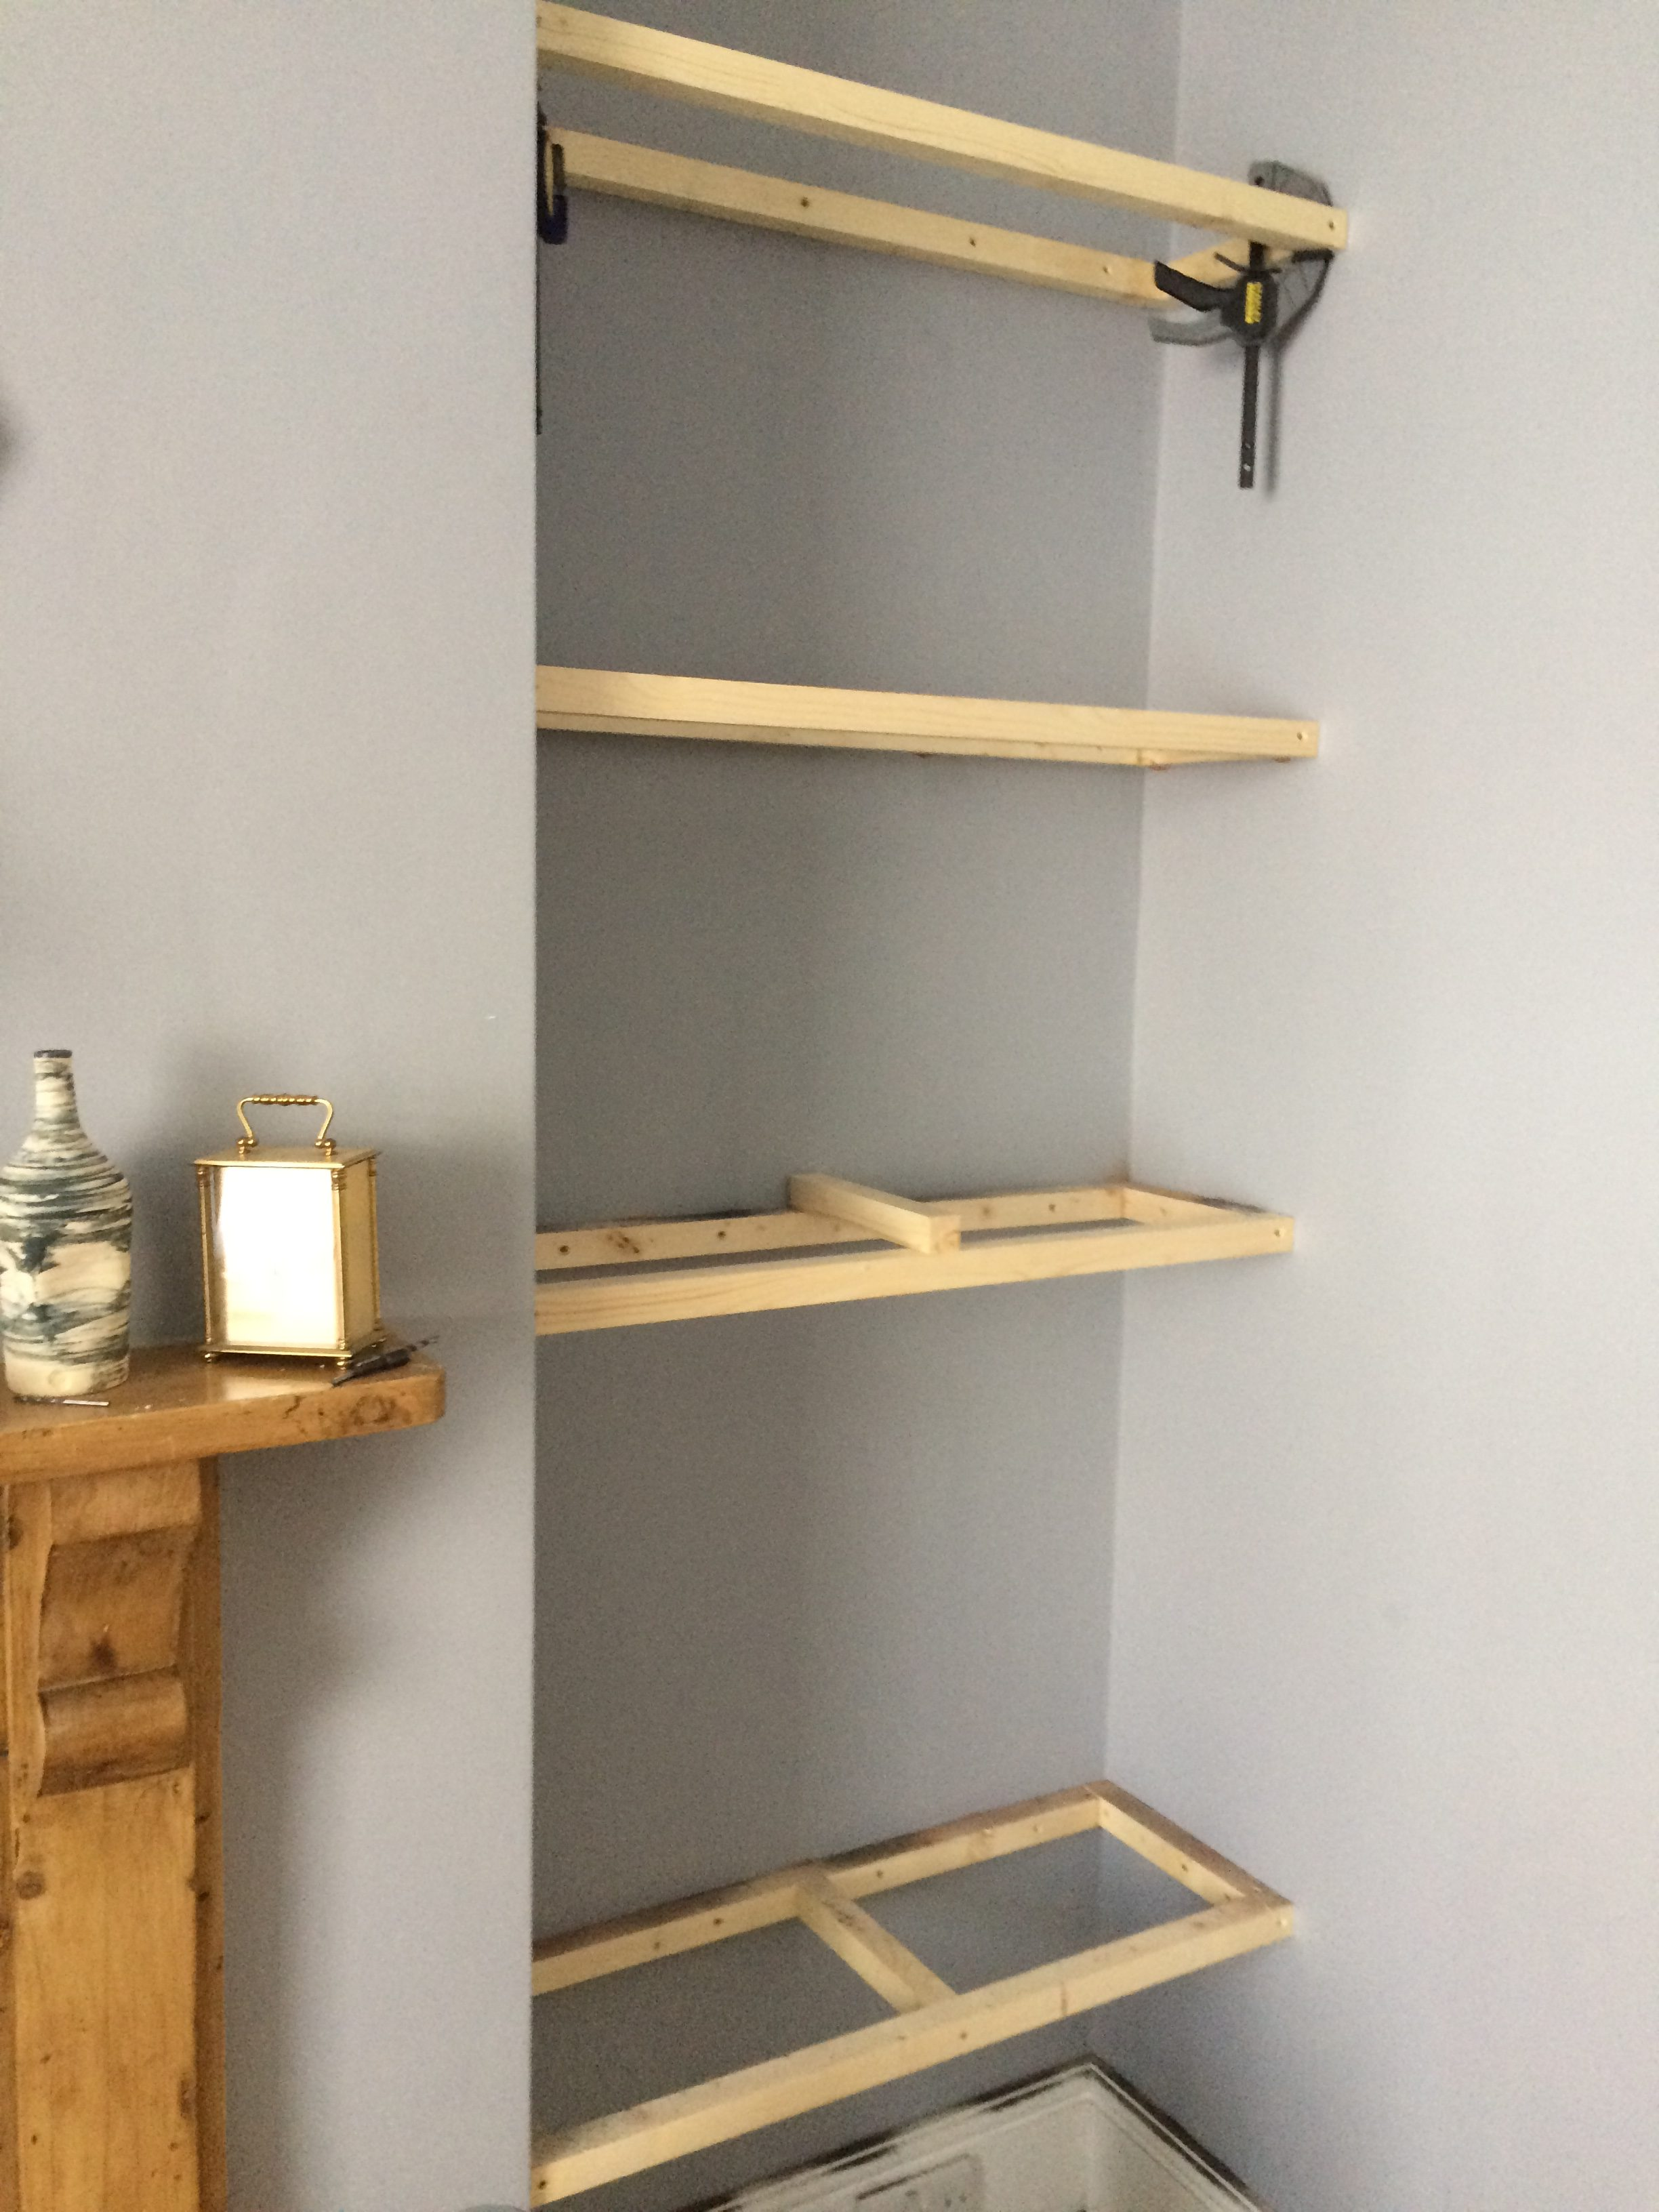 How to Build Floating Shelves in an Alcove - Old Man Grumbling